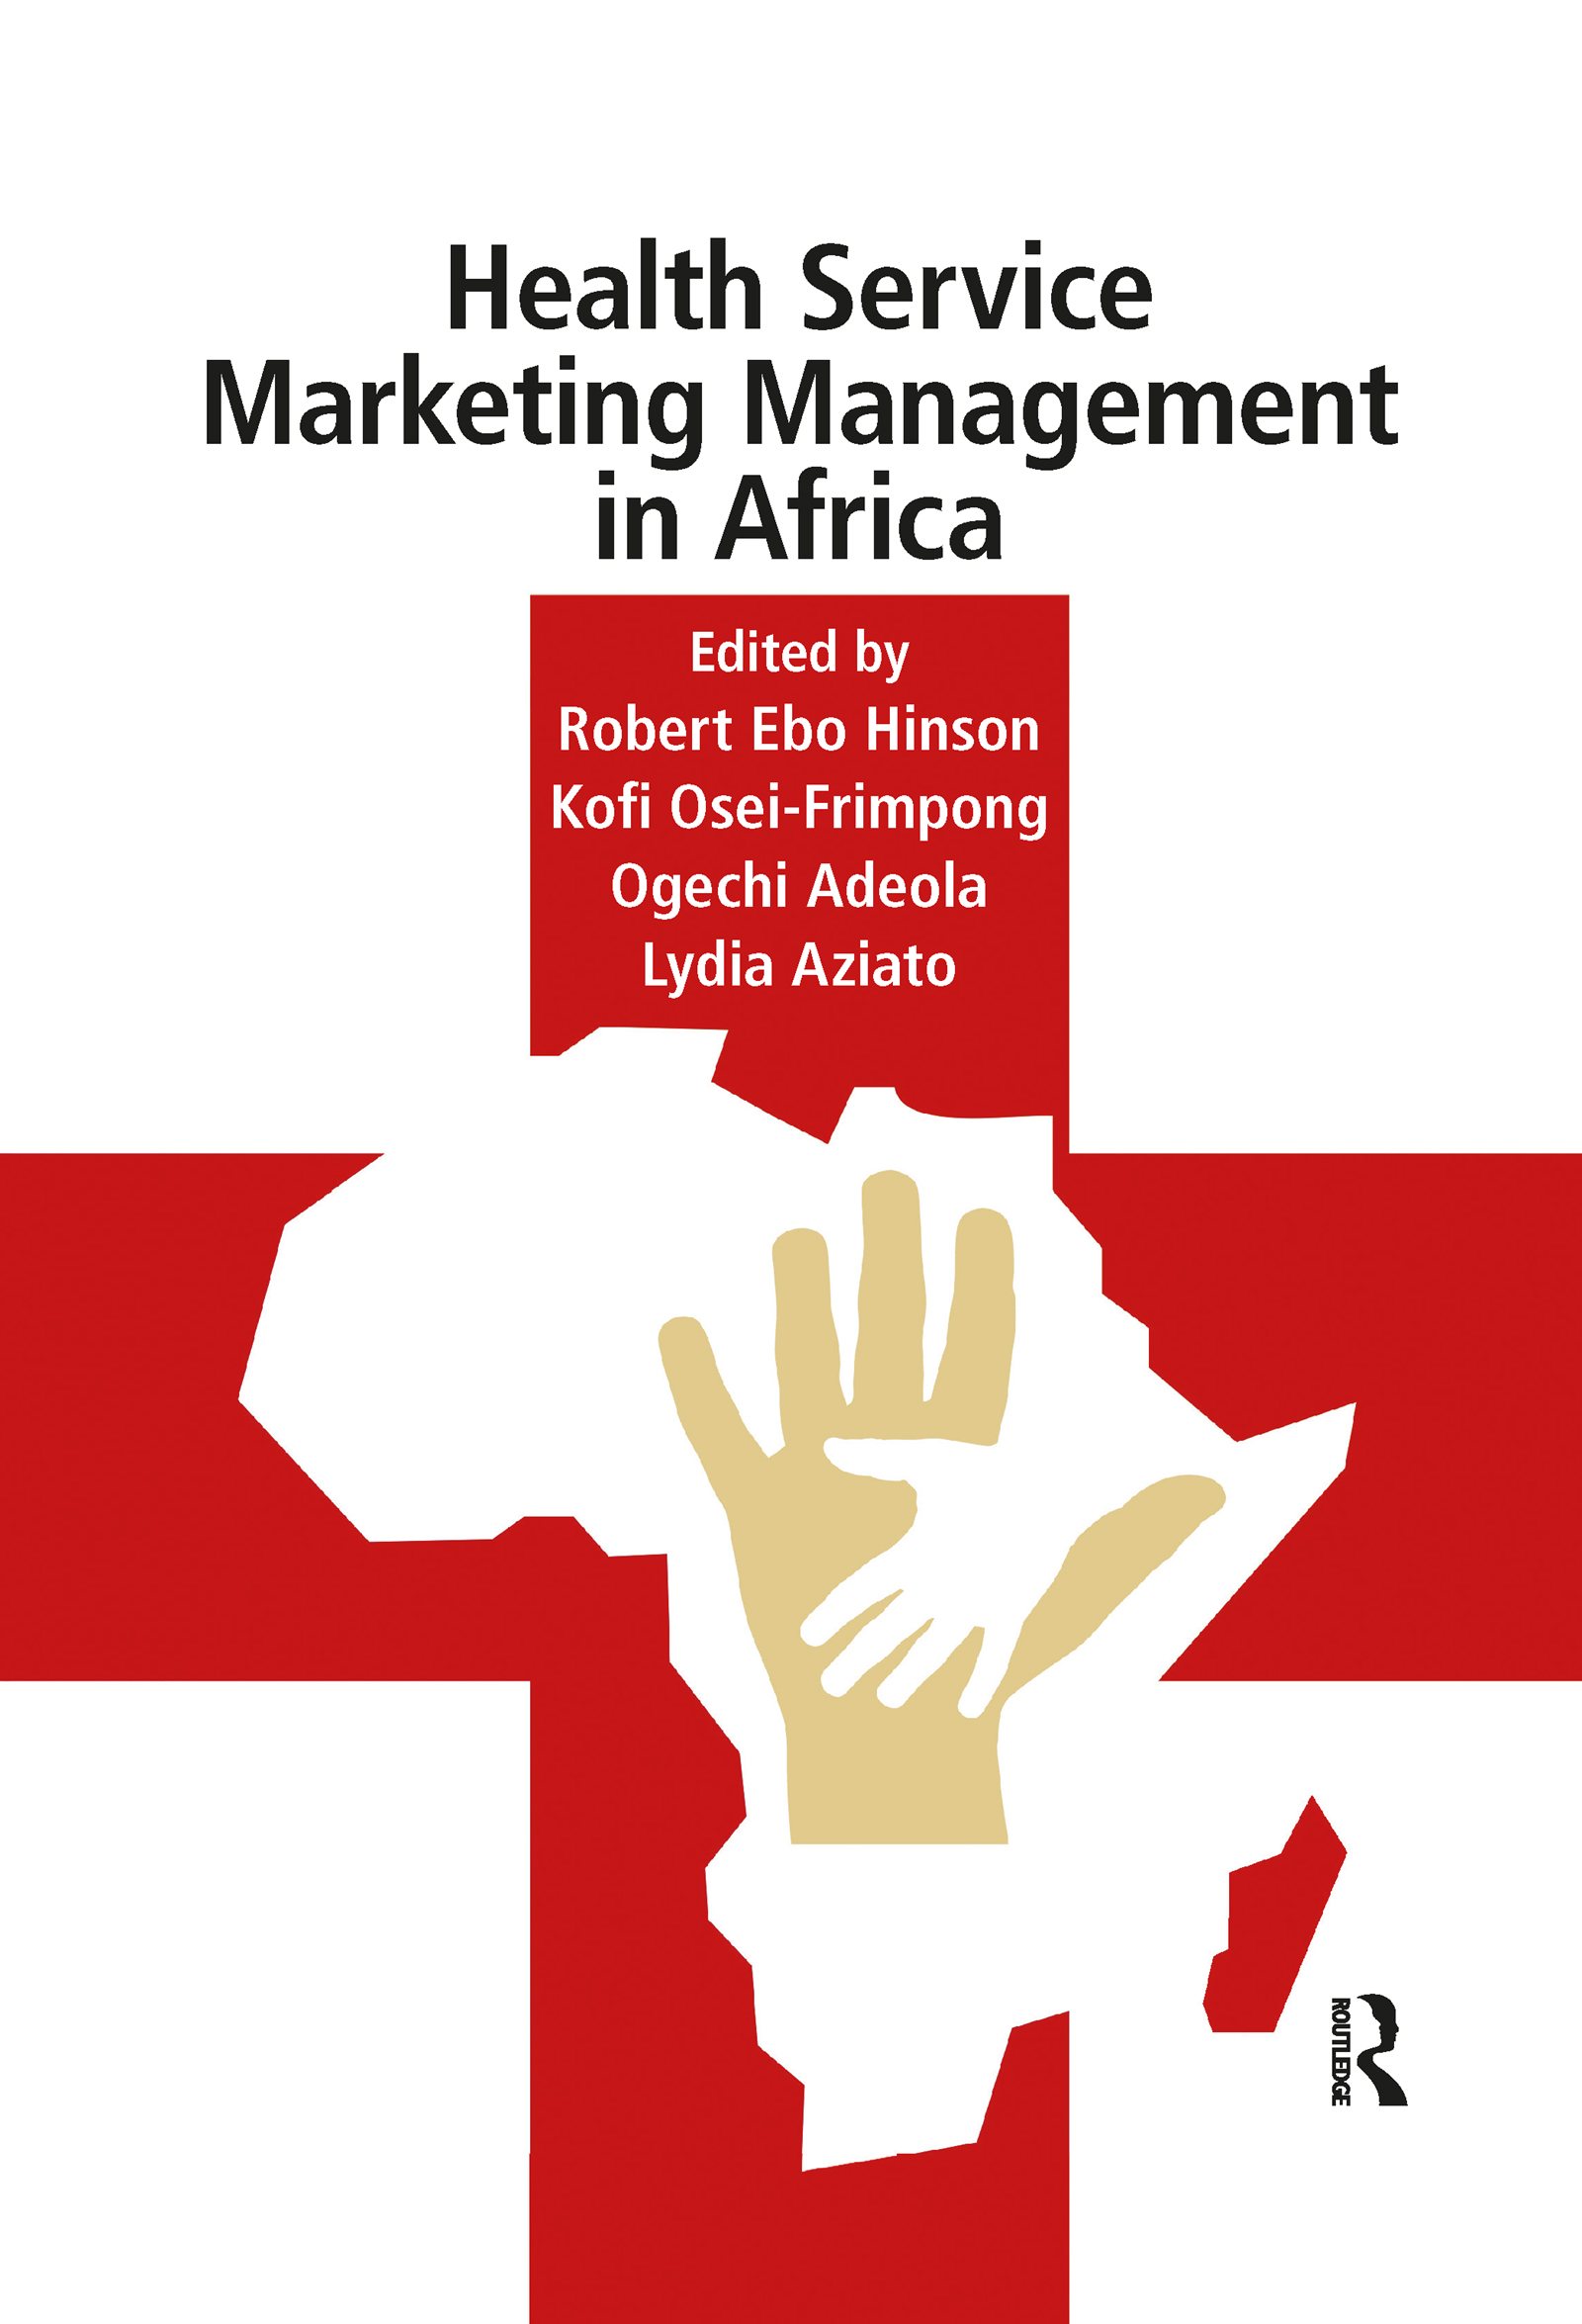 Health Service Marketing Management in Africa